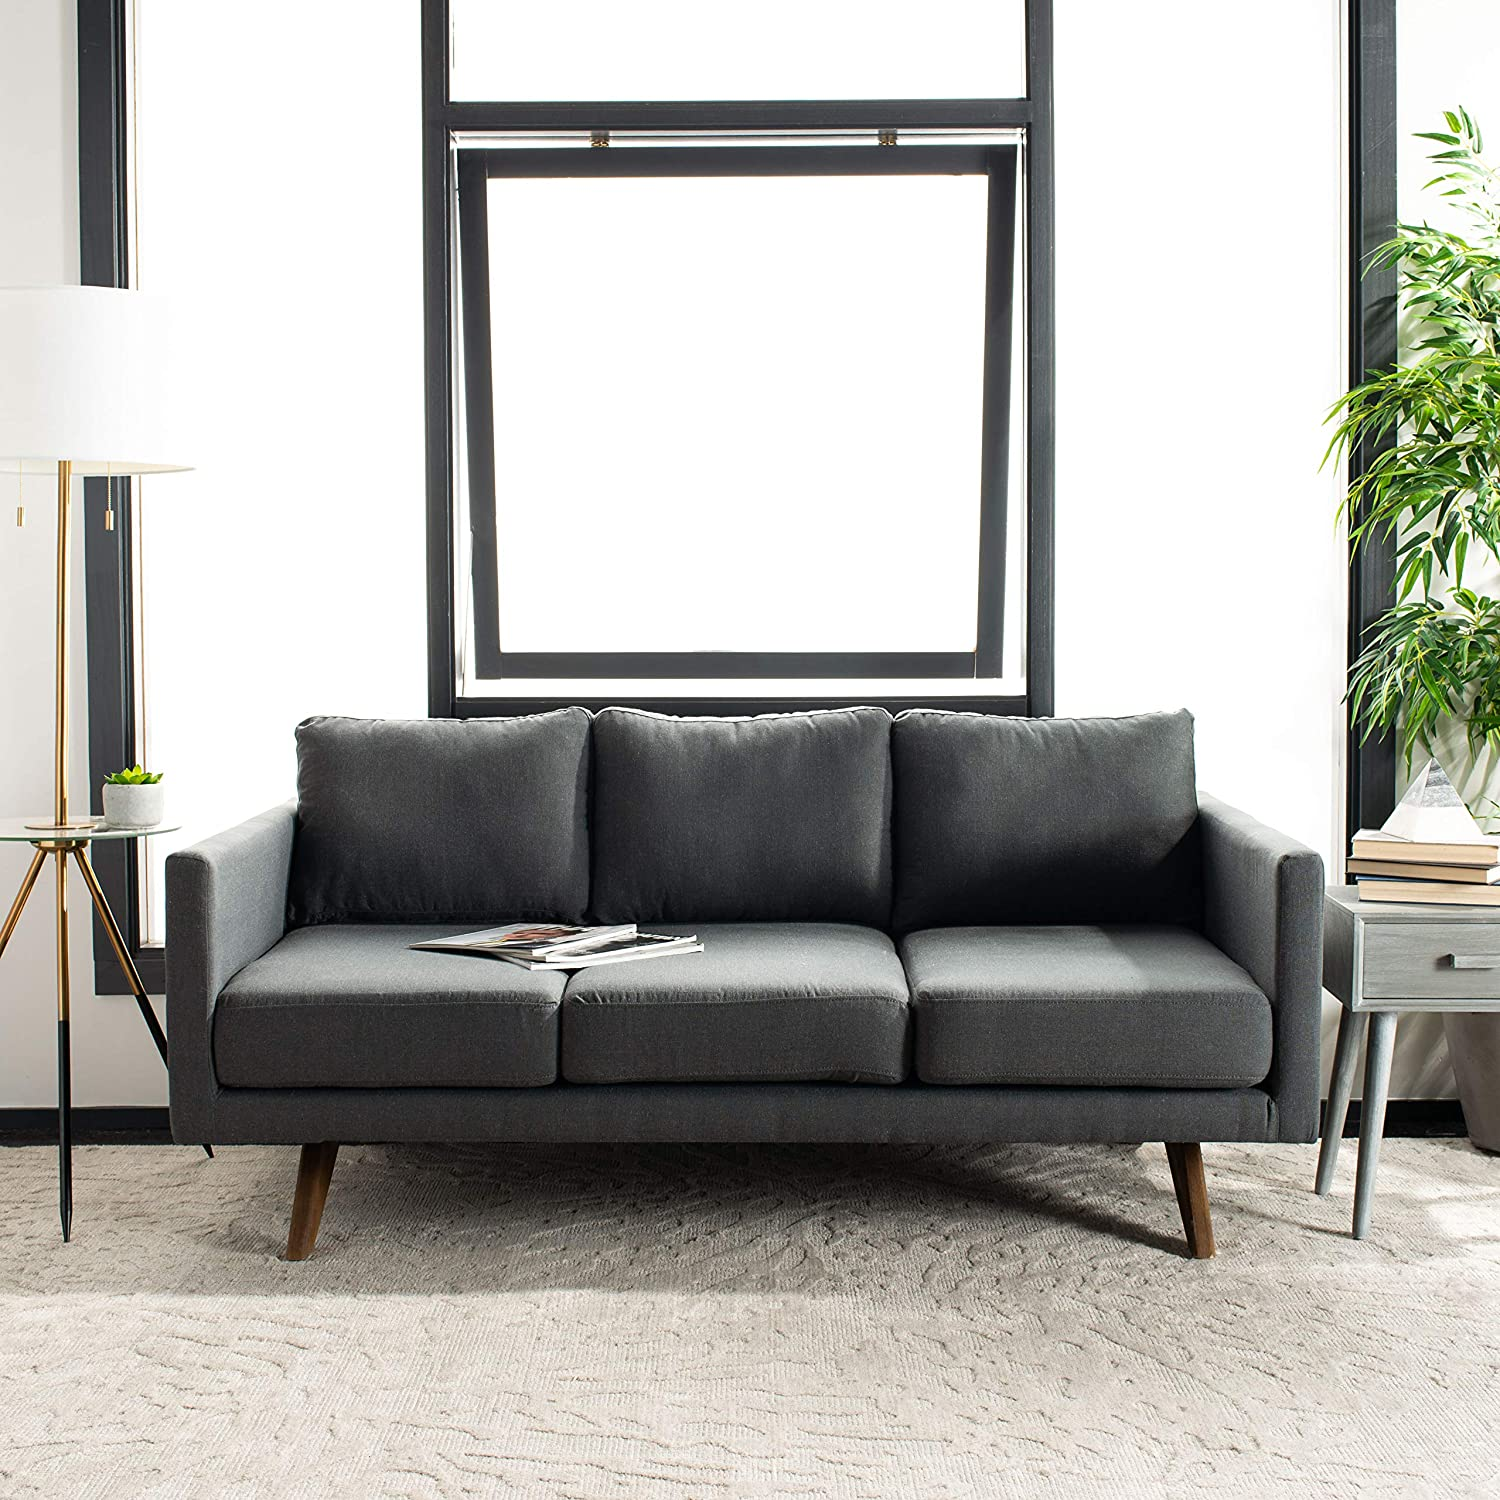 small-grey-sofa-with-three-seats-under-70-inches-classic-casual-space-saving-furniture-track-arm-design